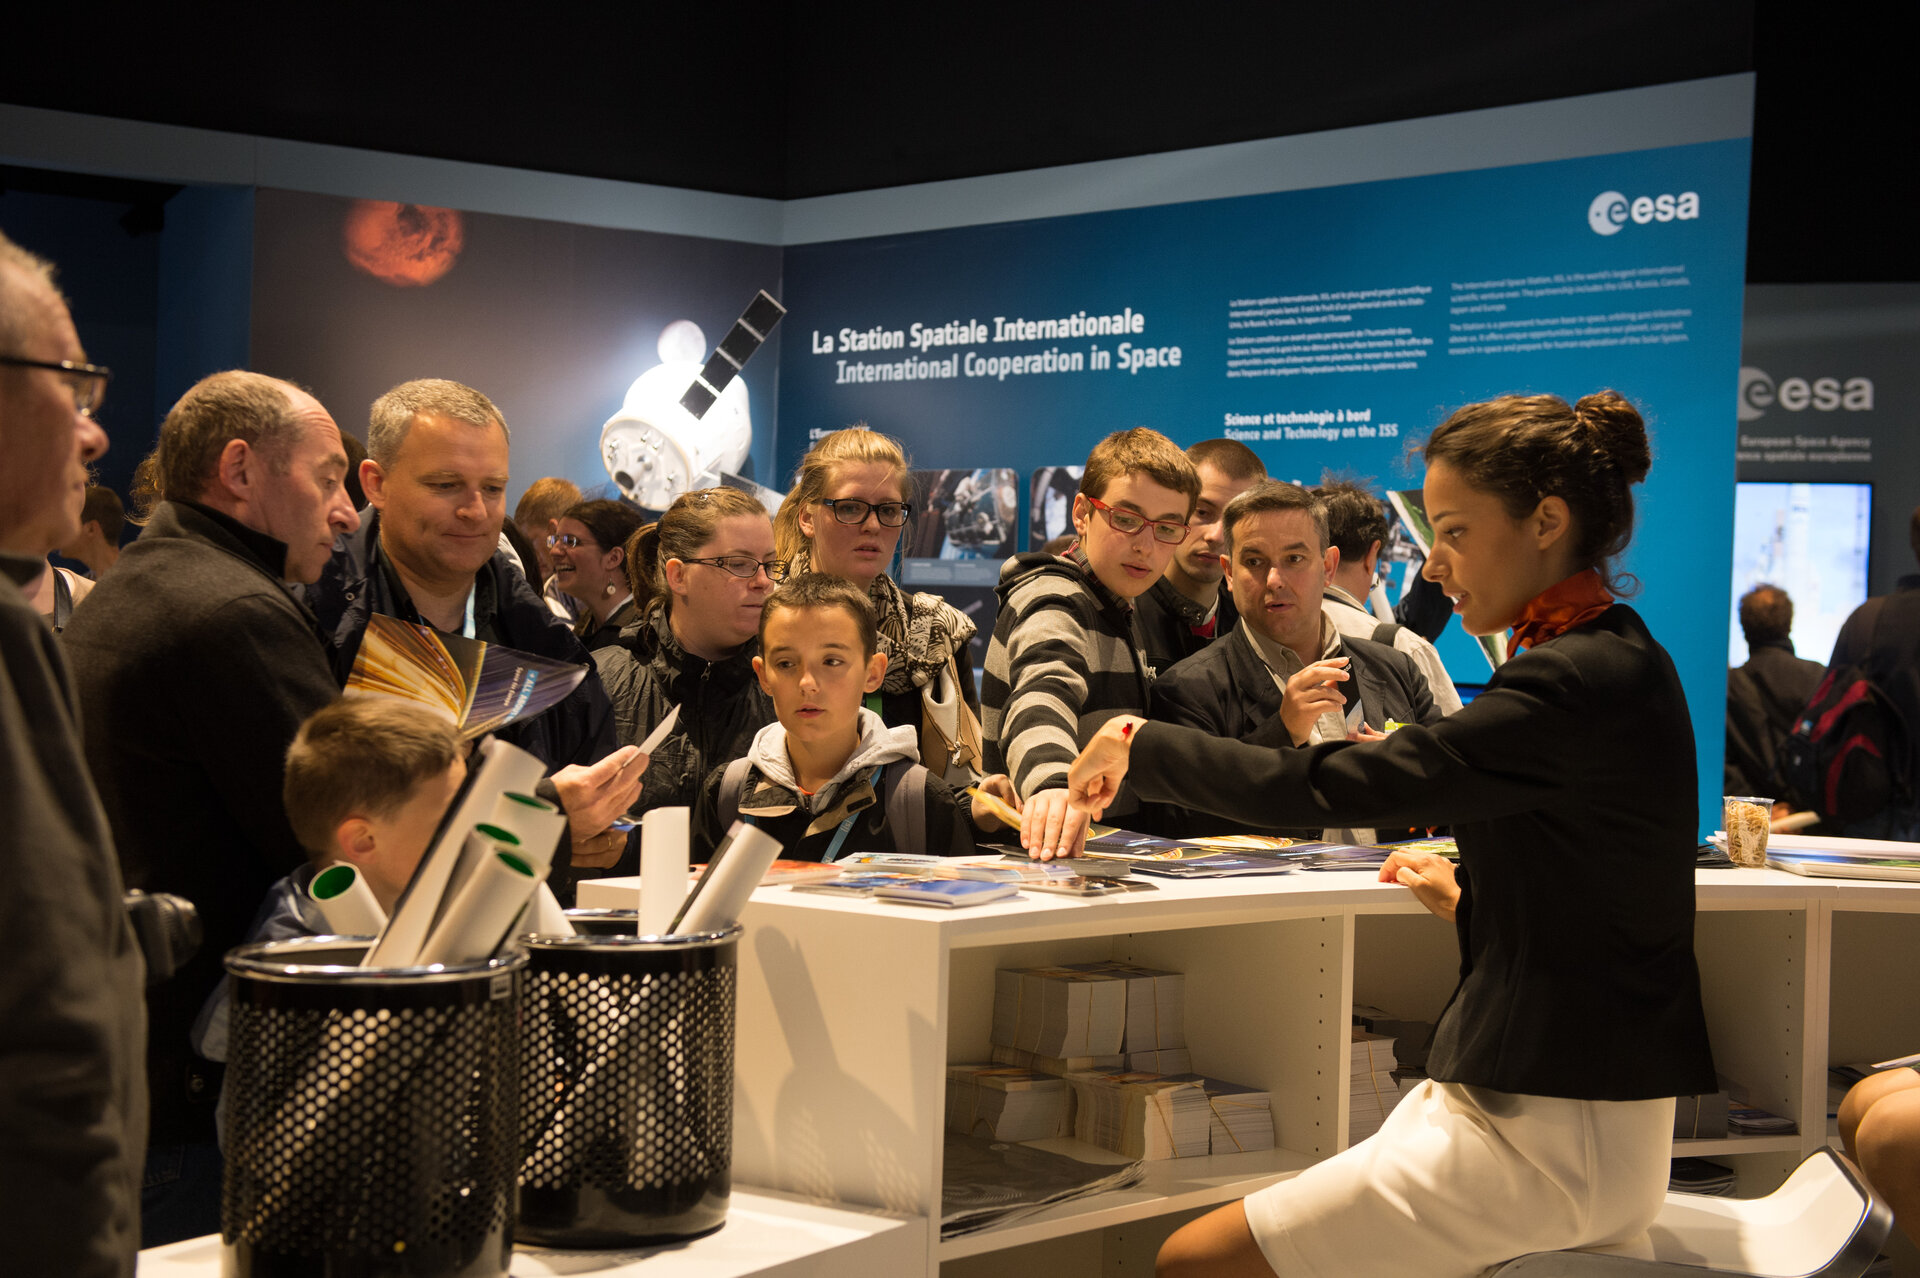 Public day at the ESA Pavilion, Paris Air and Space Show